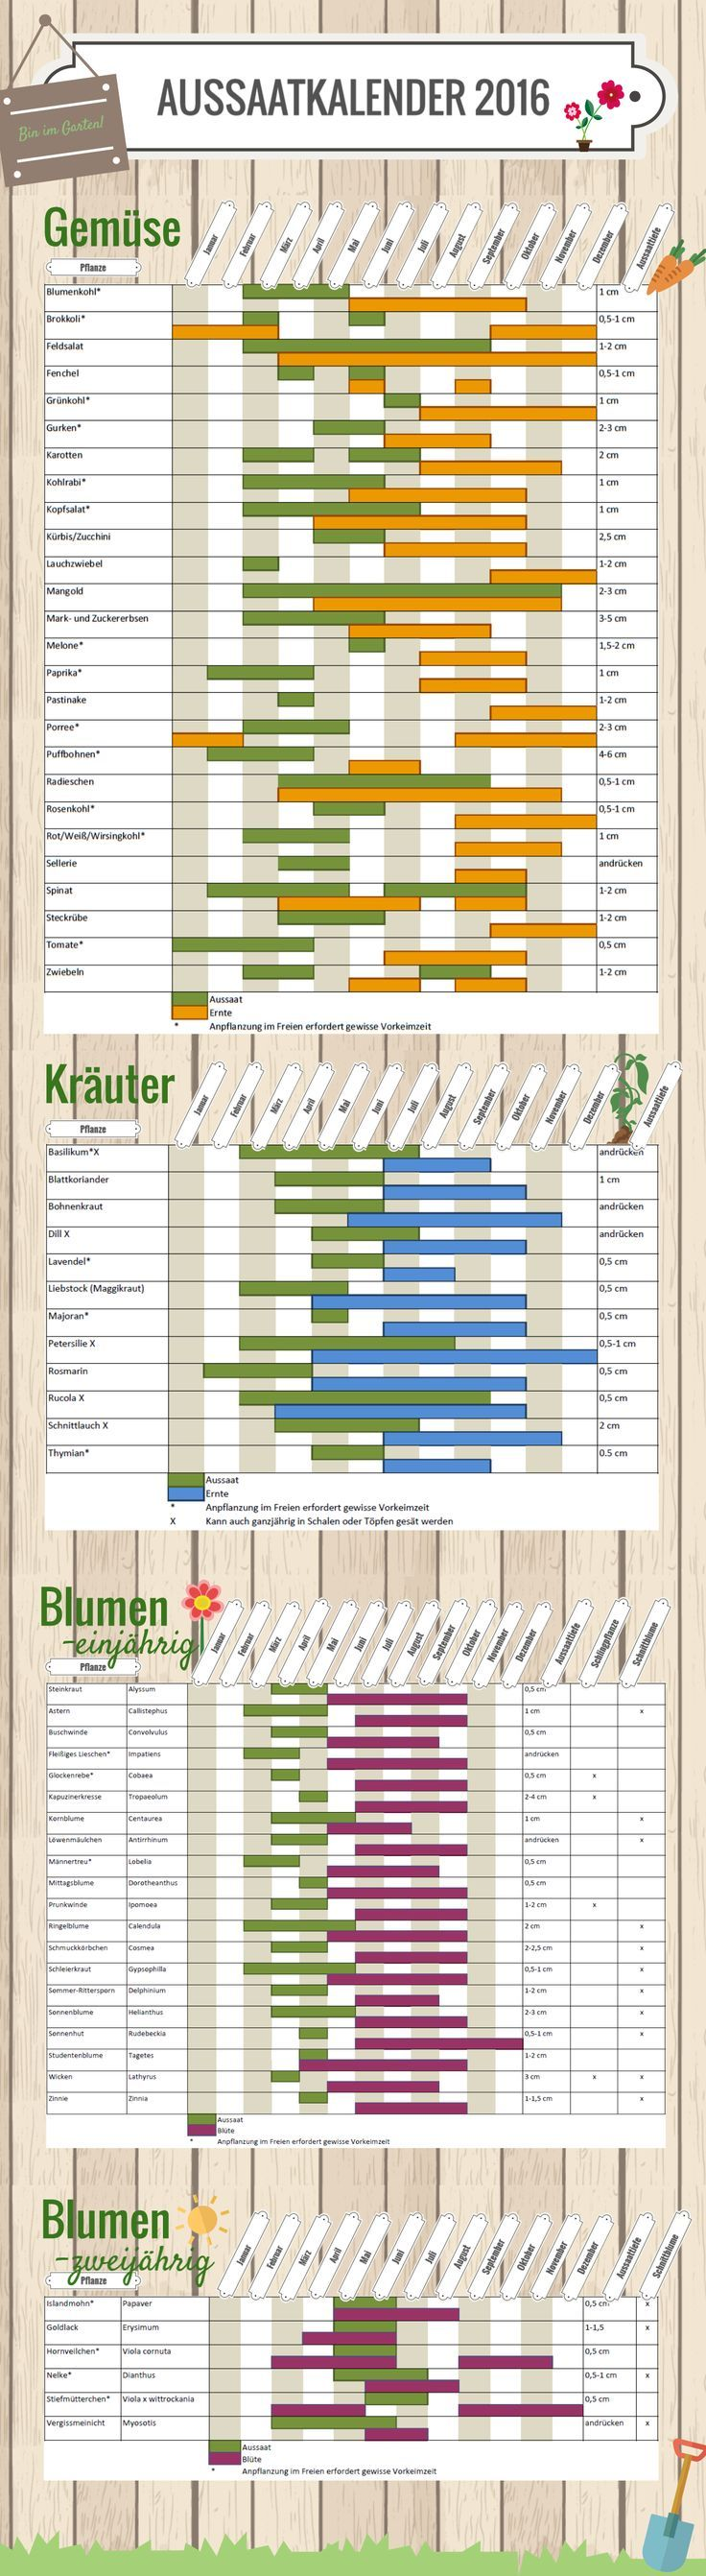 Aussaatkalender 2016  #vegan #Gemüsebeet  Entdeckt von vwww.vegaliferocks.de✨ I Fleischlos glücklich, fit & Gesund✨ I Follow me for more inspiration  /vegaliferocks/